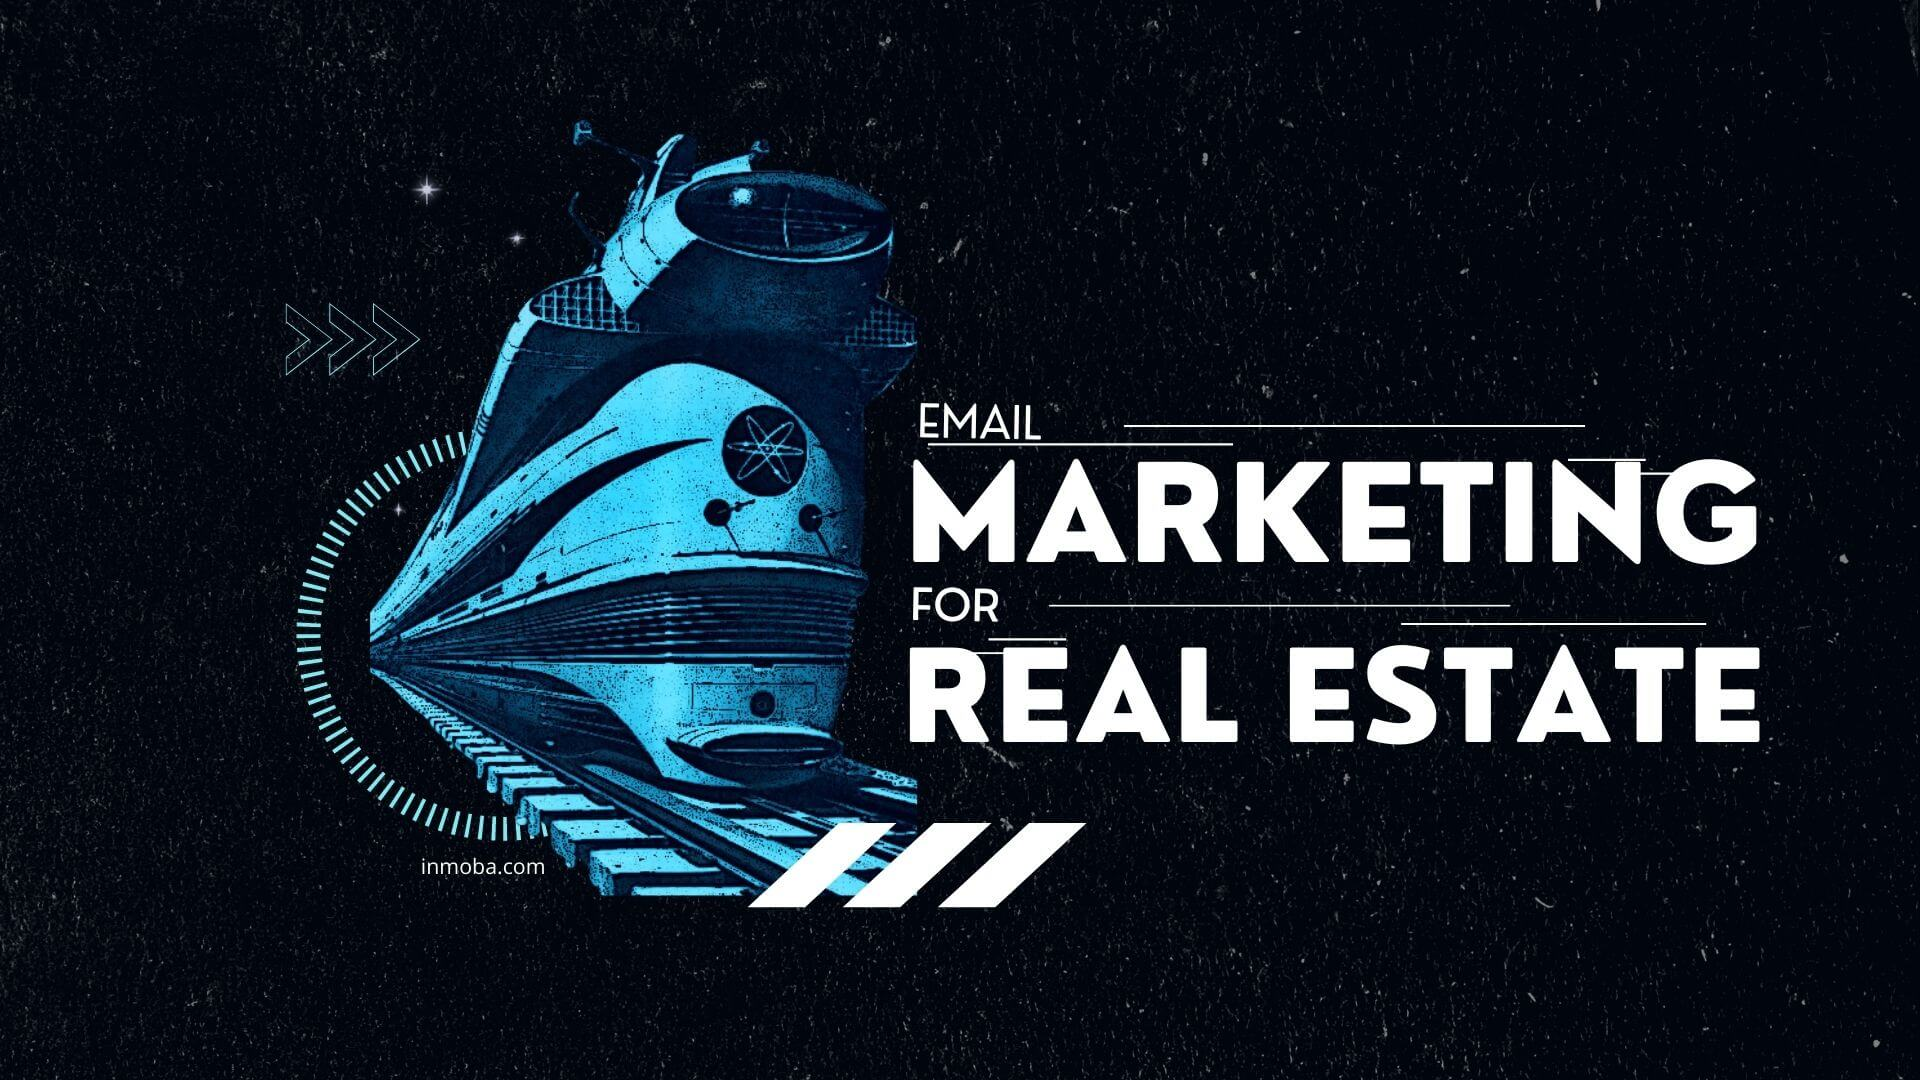 Email Marketing for Real Estate - Inmoba